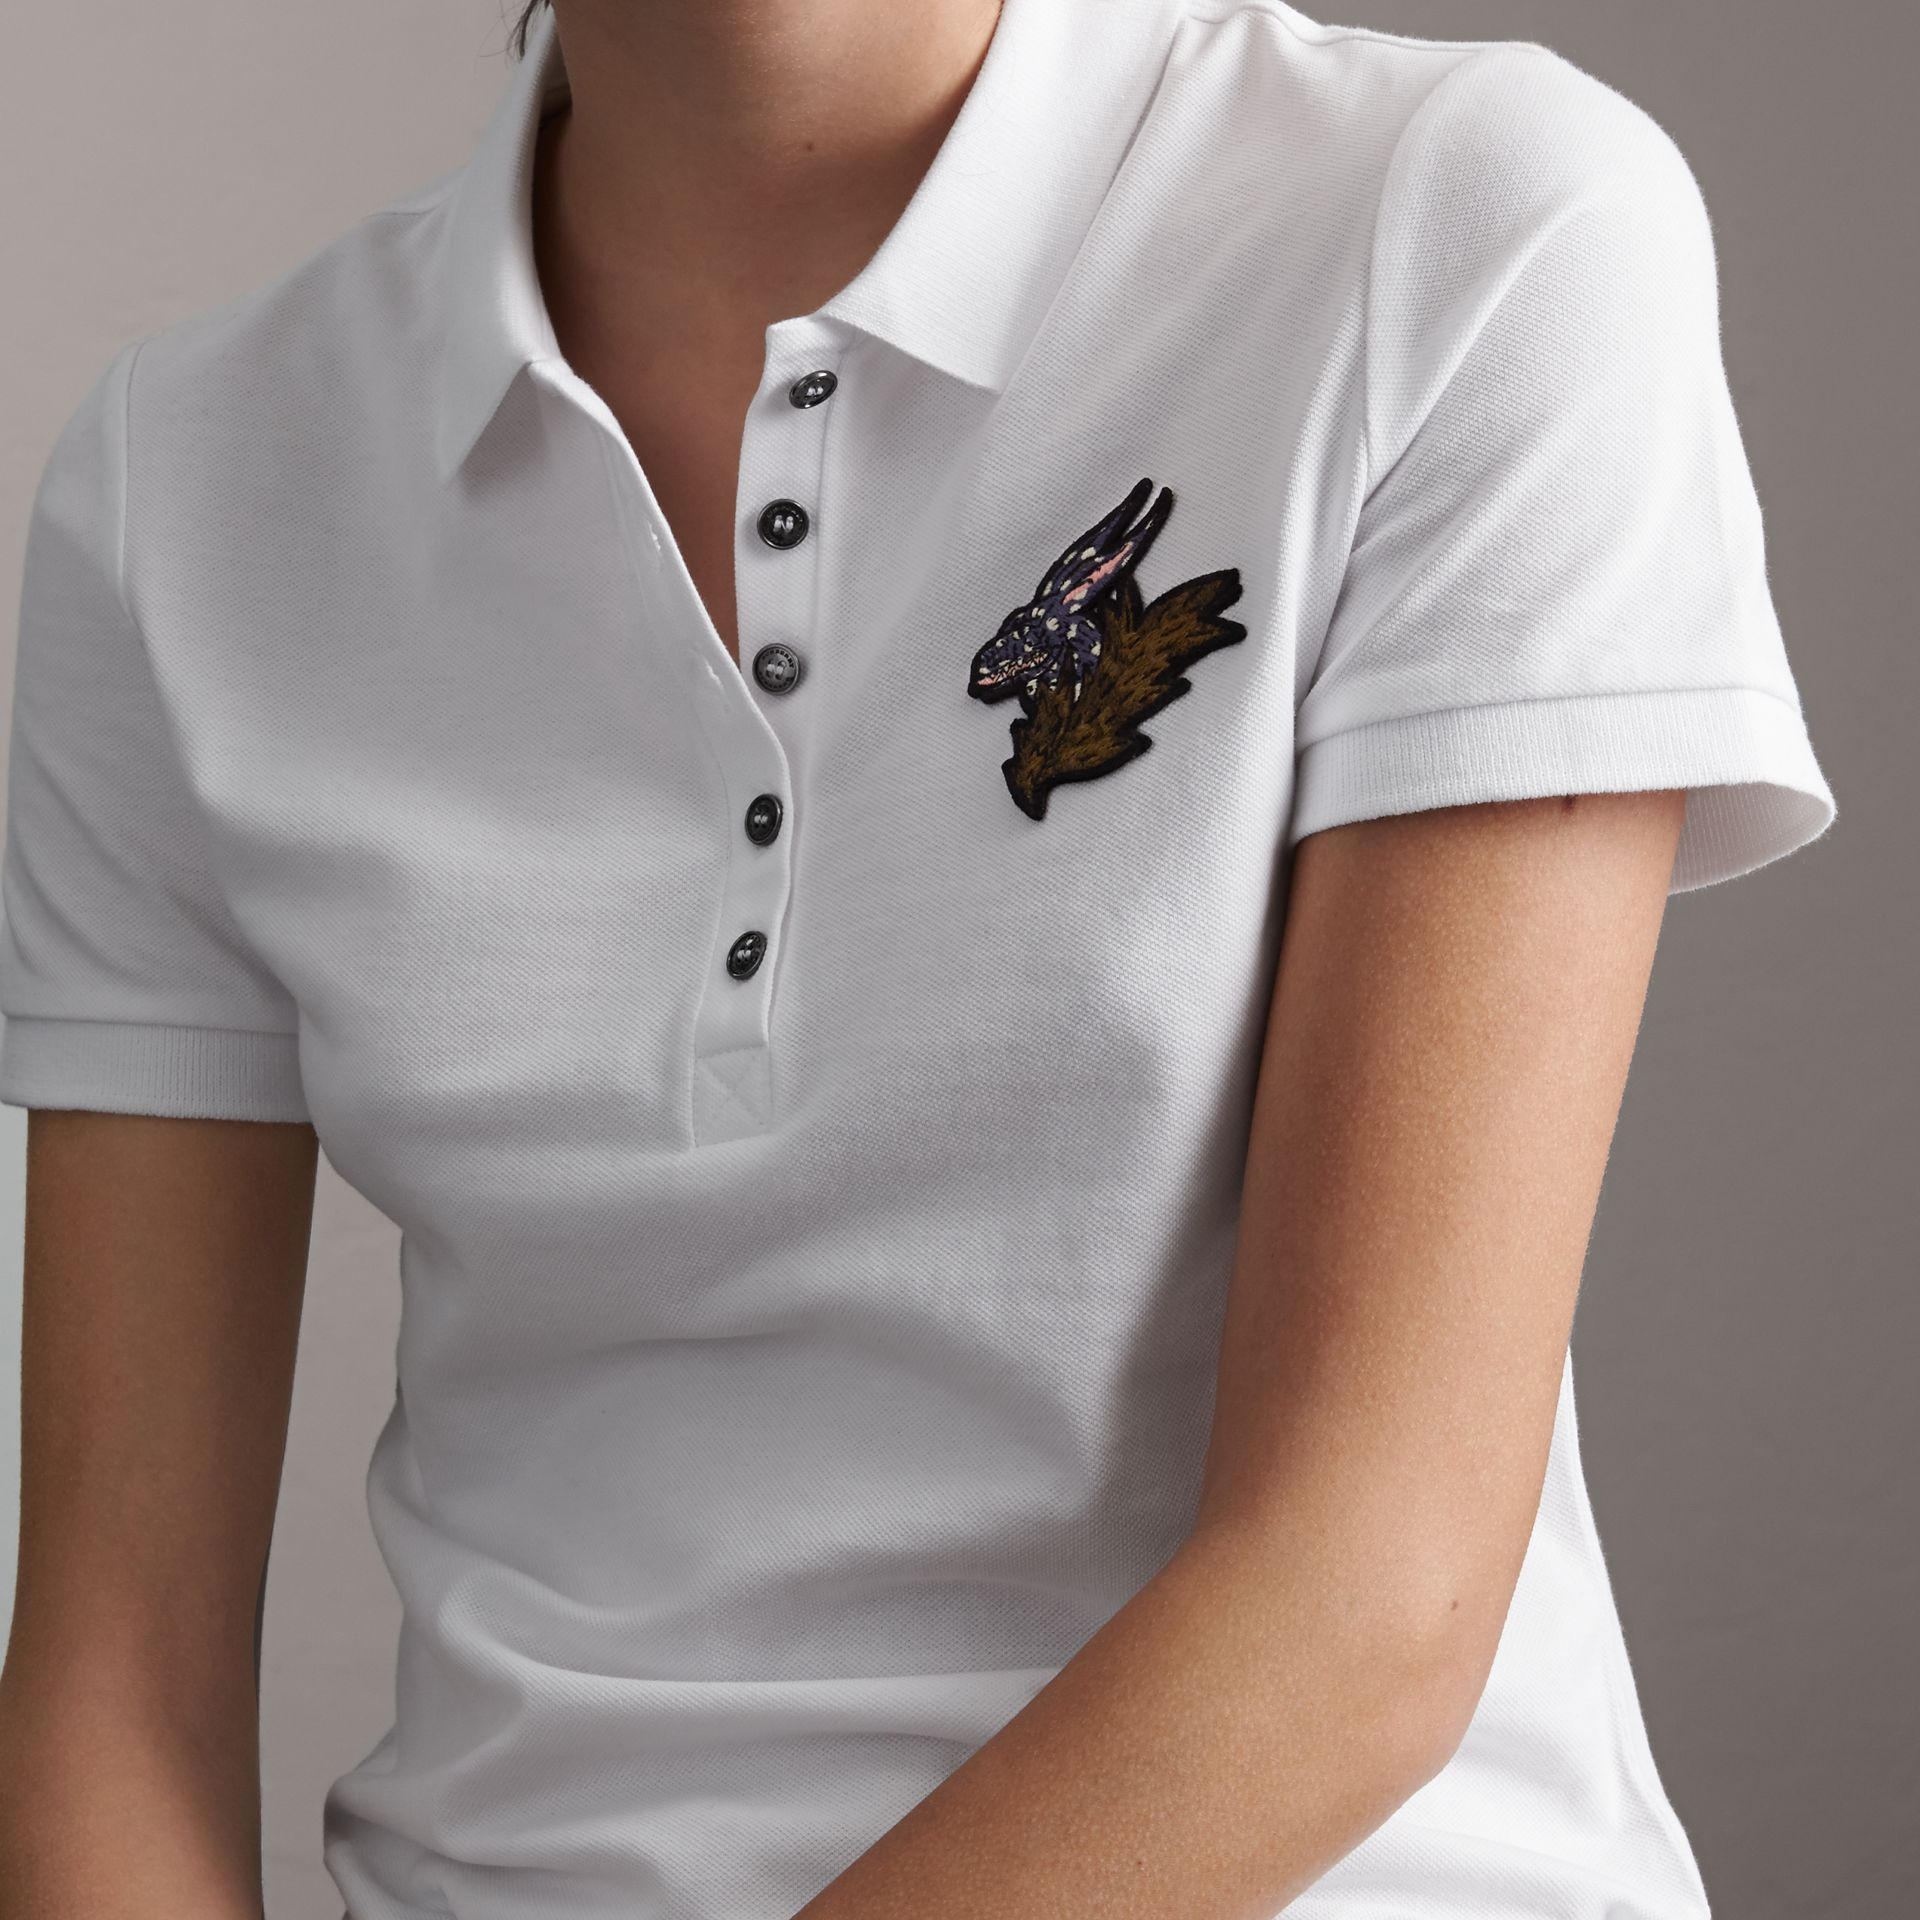 Beasts Motif Stretch Cotton Piqué Polo Shirt in White - Women | Burberry Canada - gallery image 5